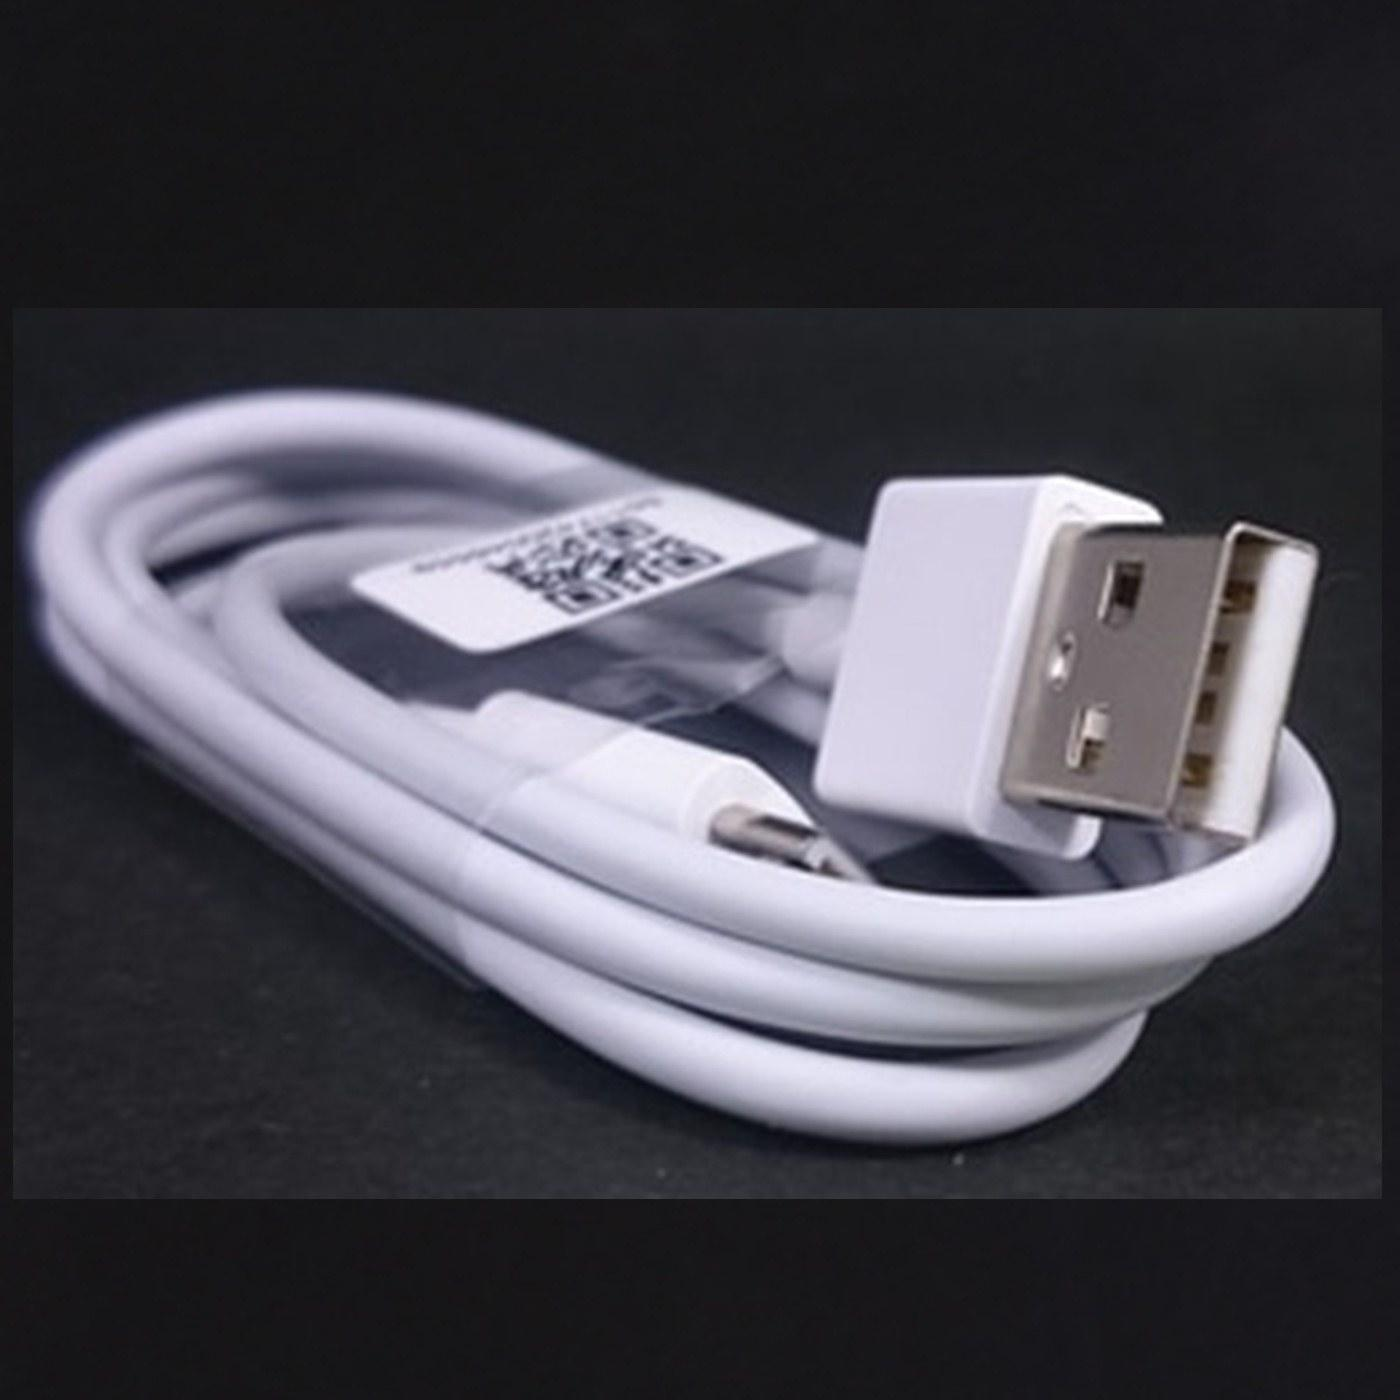 Buy Sell Cheapest Xiaomi Mdy 08 Best Quality Product Deals Travel Charger 2ampere Micro Usb Original Kabel Data Ev Fast Redmi 4x Putih